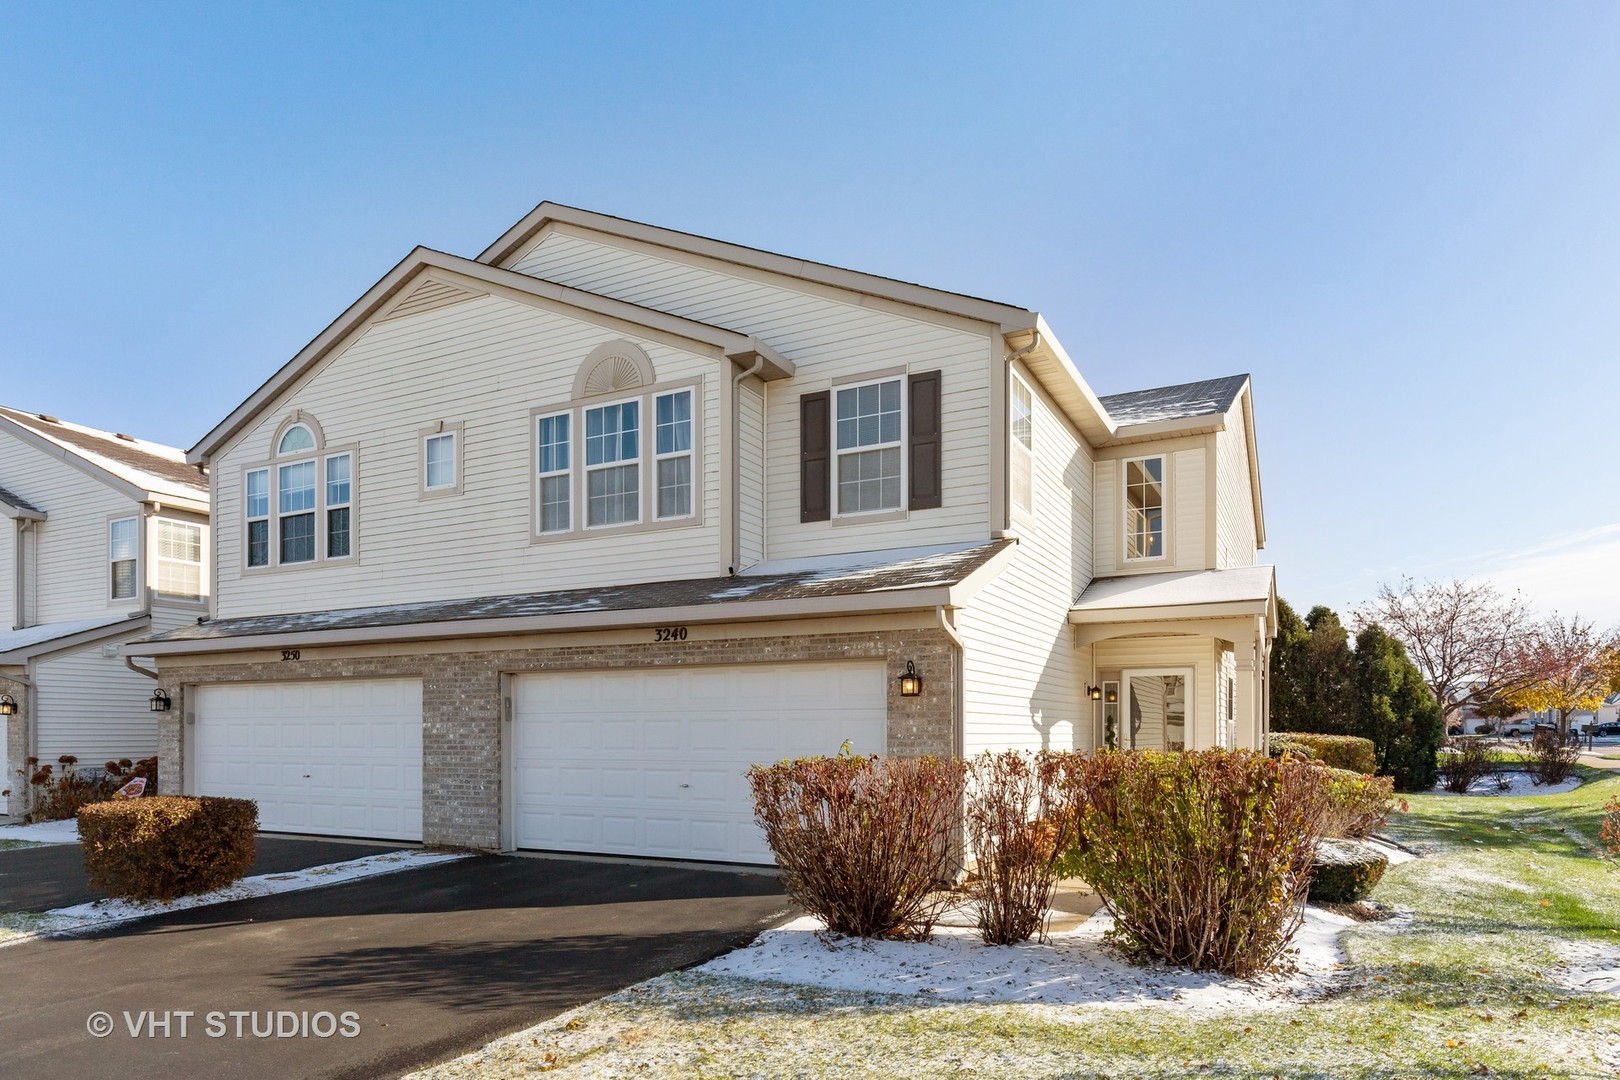 Photo for 3240 Ronan Drive, Lake In The Hills, IL 60156 (MLS # 10569612)